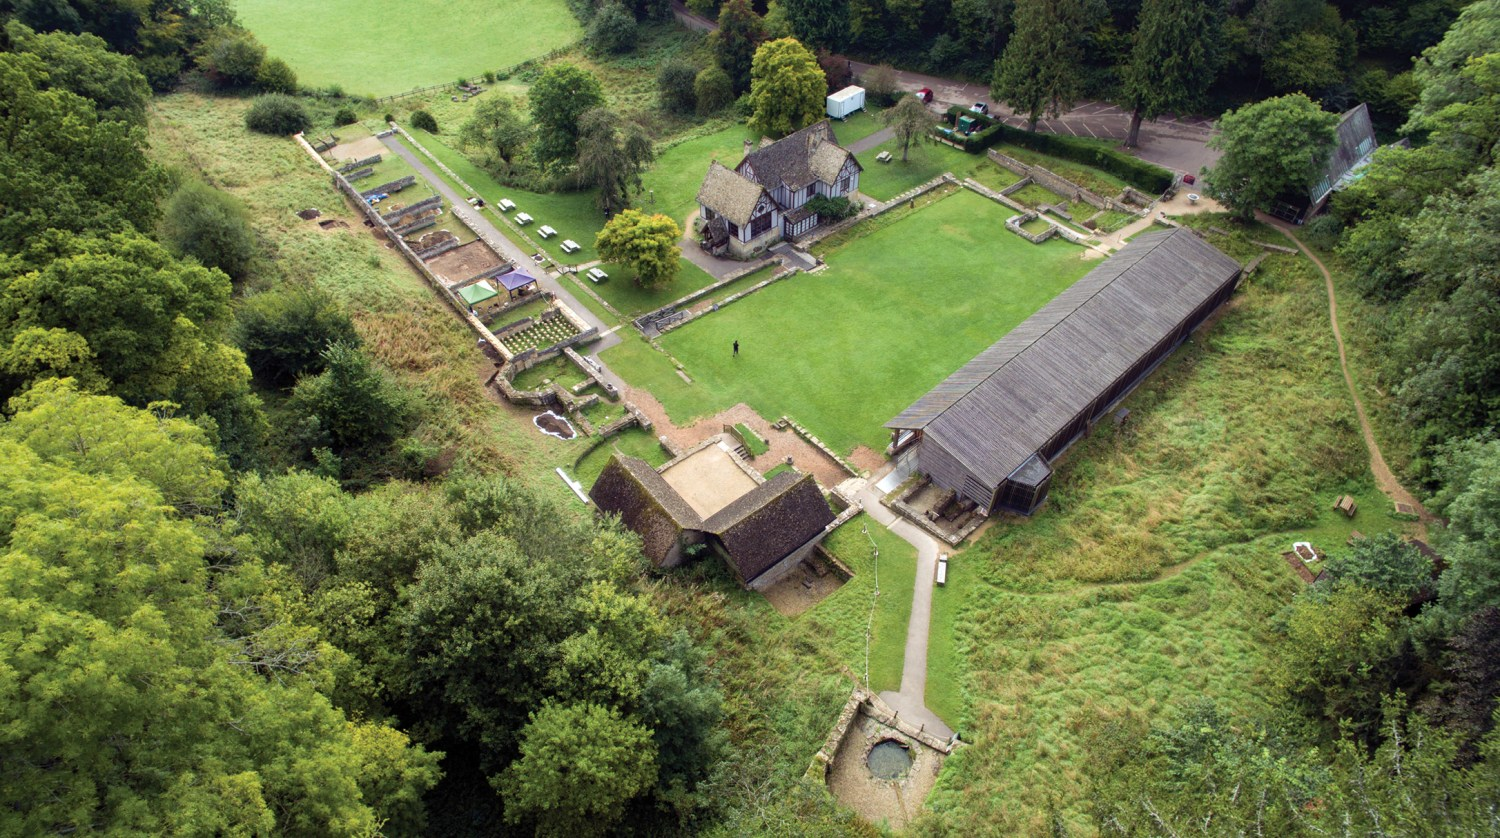 below This drone photograph (looking south-east) shows the extent of the villa complex at Chedworth: bottom centre we see the Nymphaeum, built at a natural spring, with bathhouses on either side of it. The North Range of villa buildings lie to the left, and the West Range to the right.